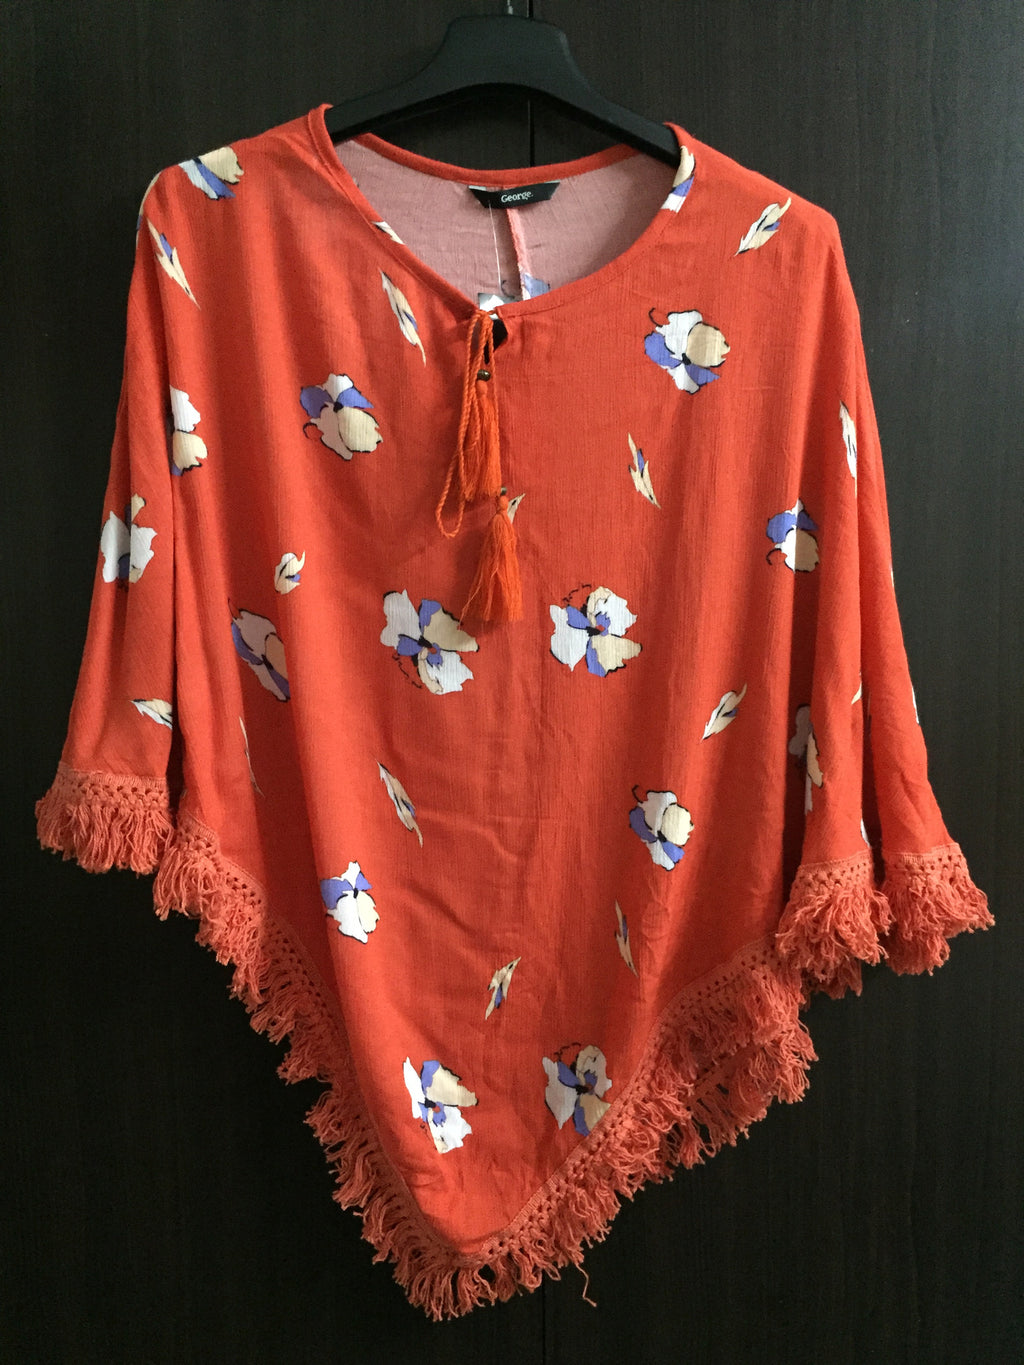 Poncho Style Orange Top with Tassels